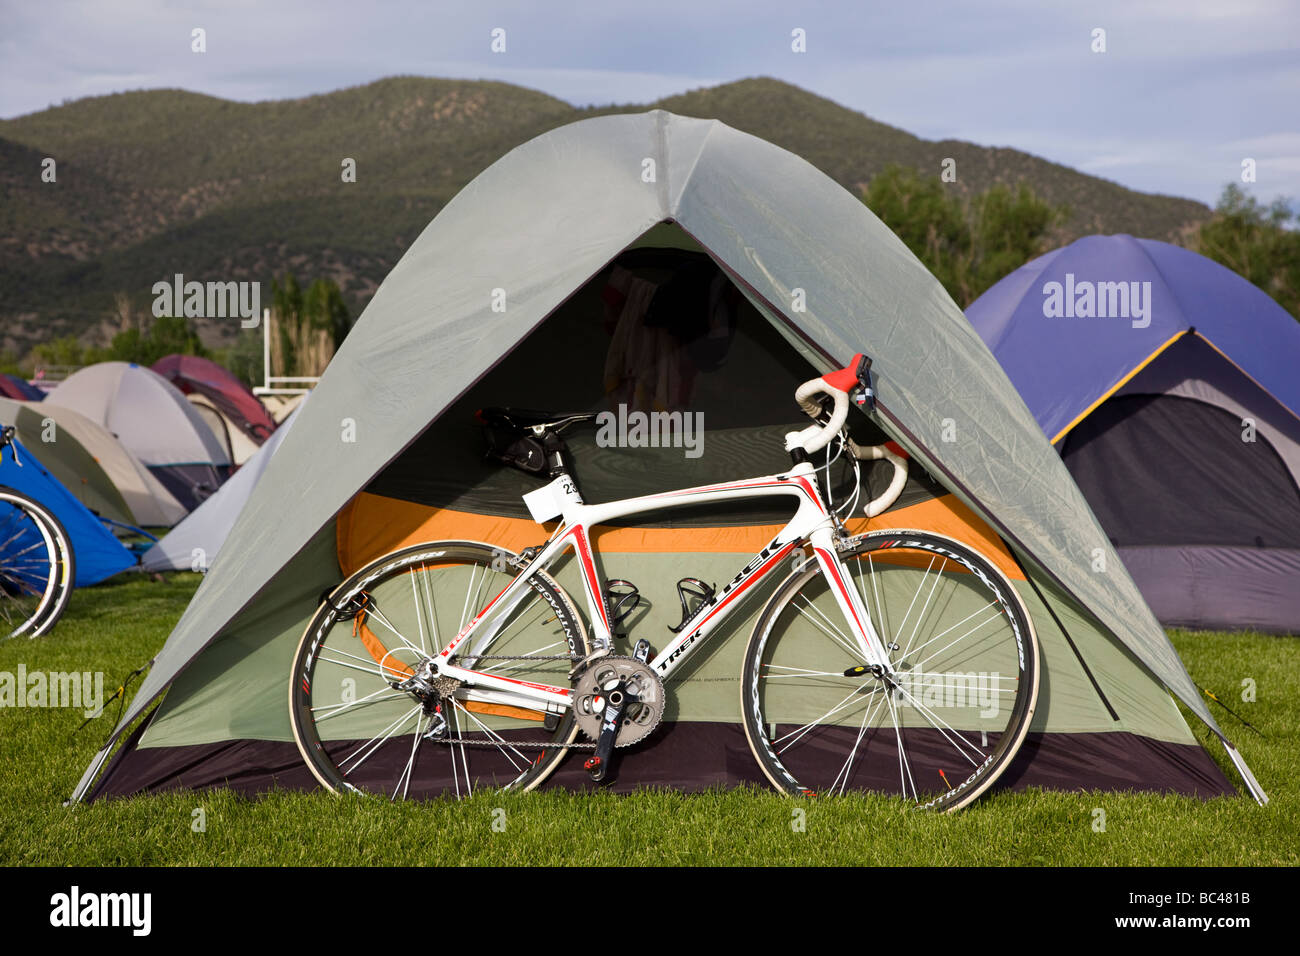 Cyclists camping at the Salida High School in Colorado during the annual Ride The Rockies bicycle tour - Stock Image